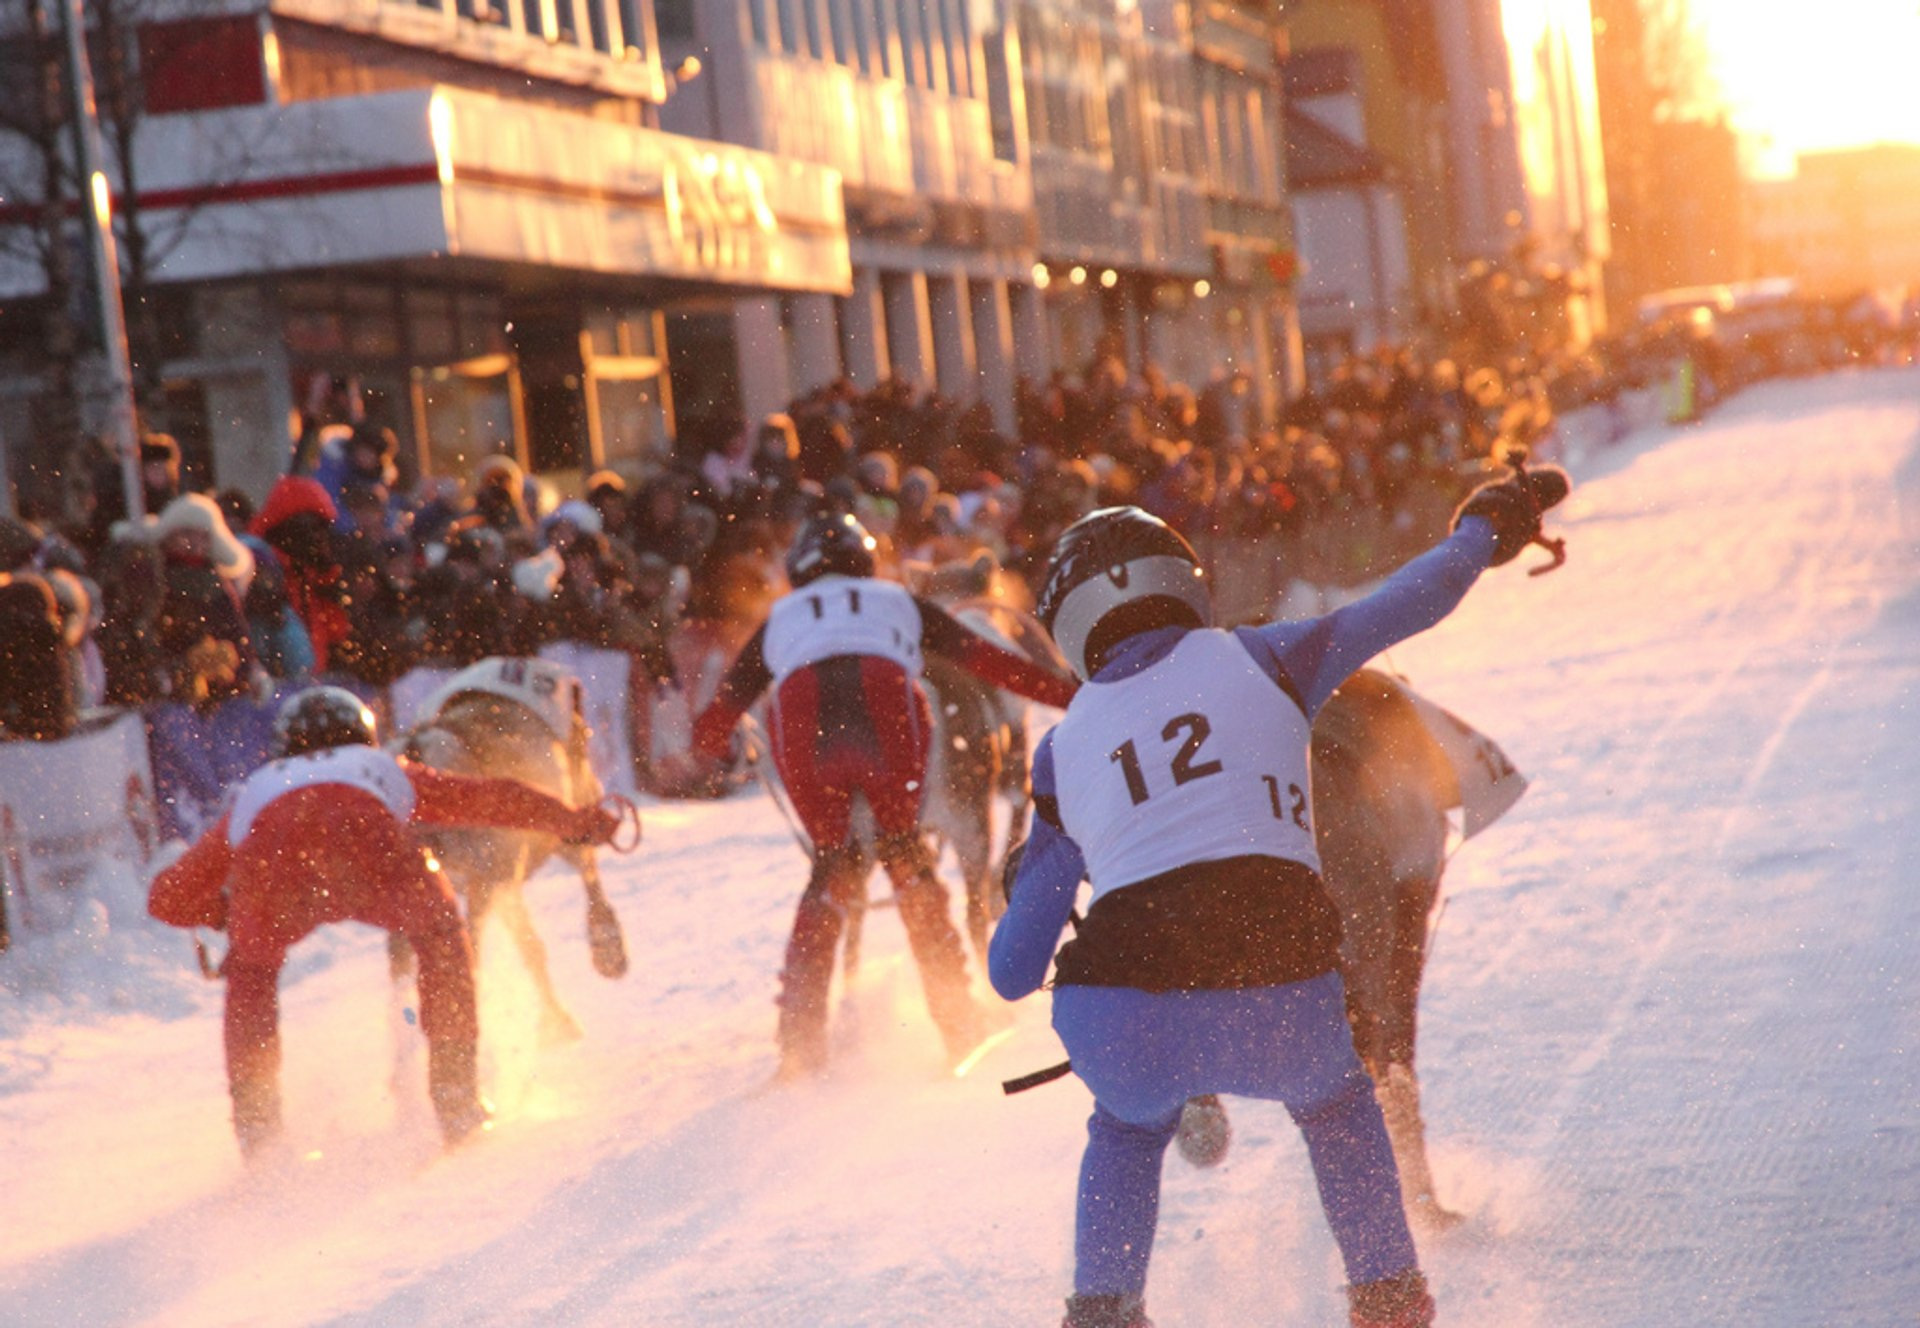 Reindeer race in Tromsø 2020